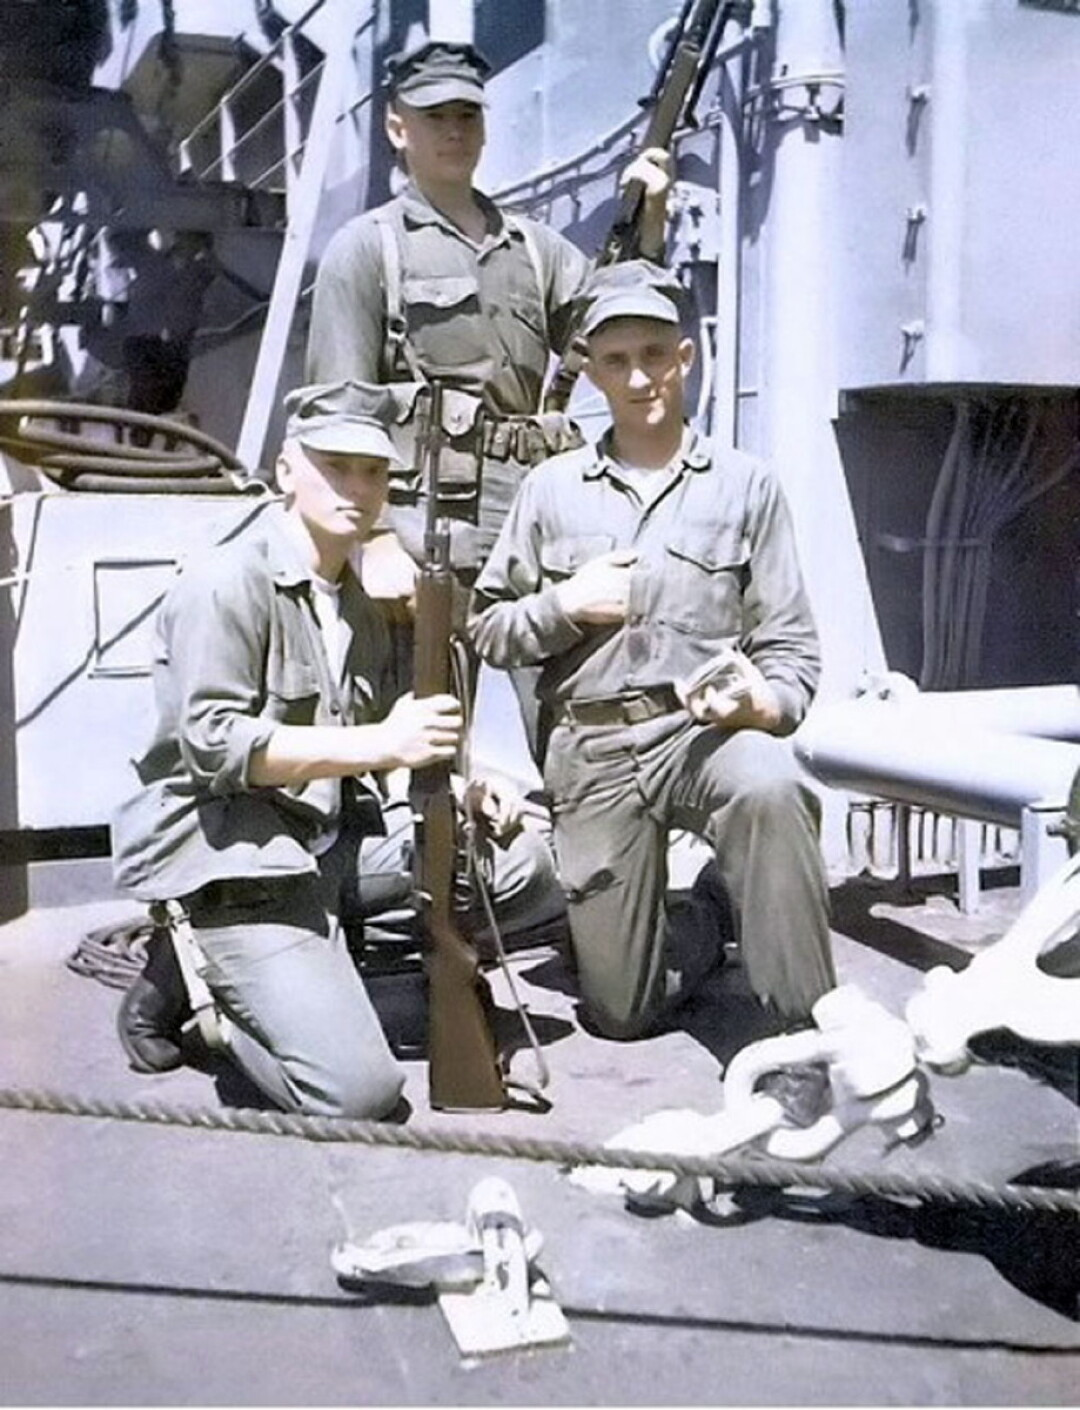 Marine Pfc. David Dola (back), shown during his service in Vietnam, won the Silver Star for gallantry in combat.